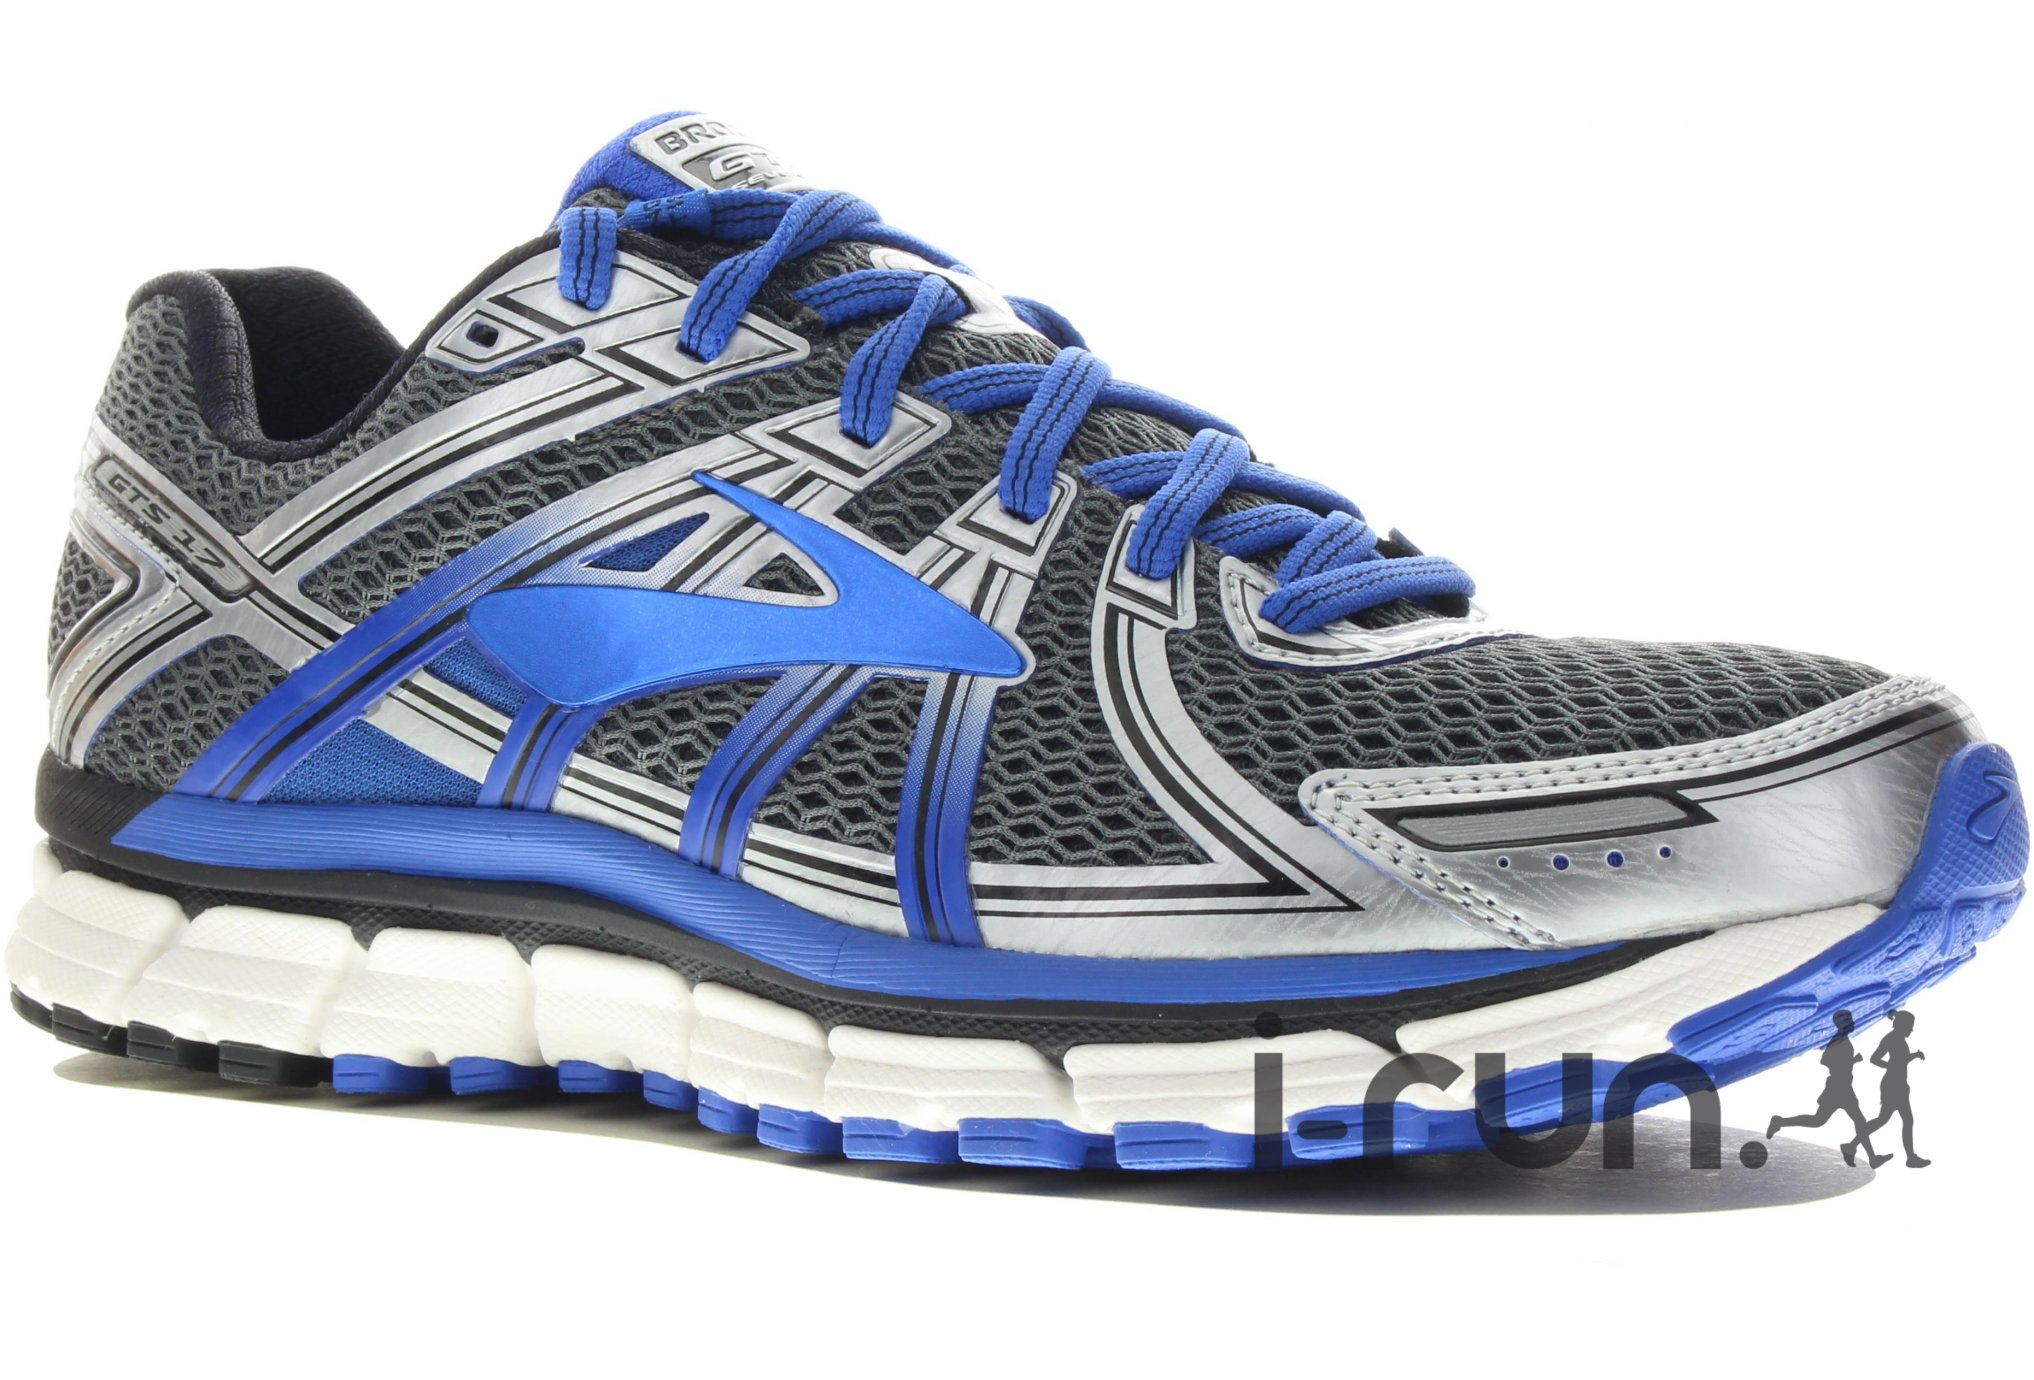 Brooks Adrenaline gts 17 m chaussures homme